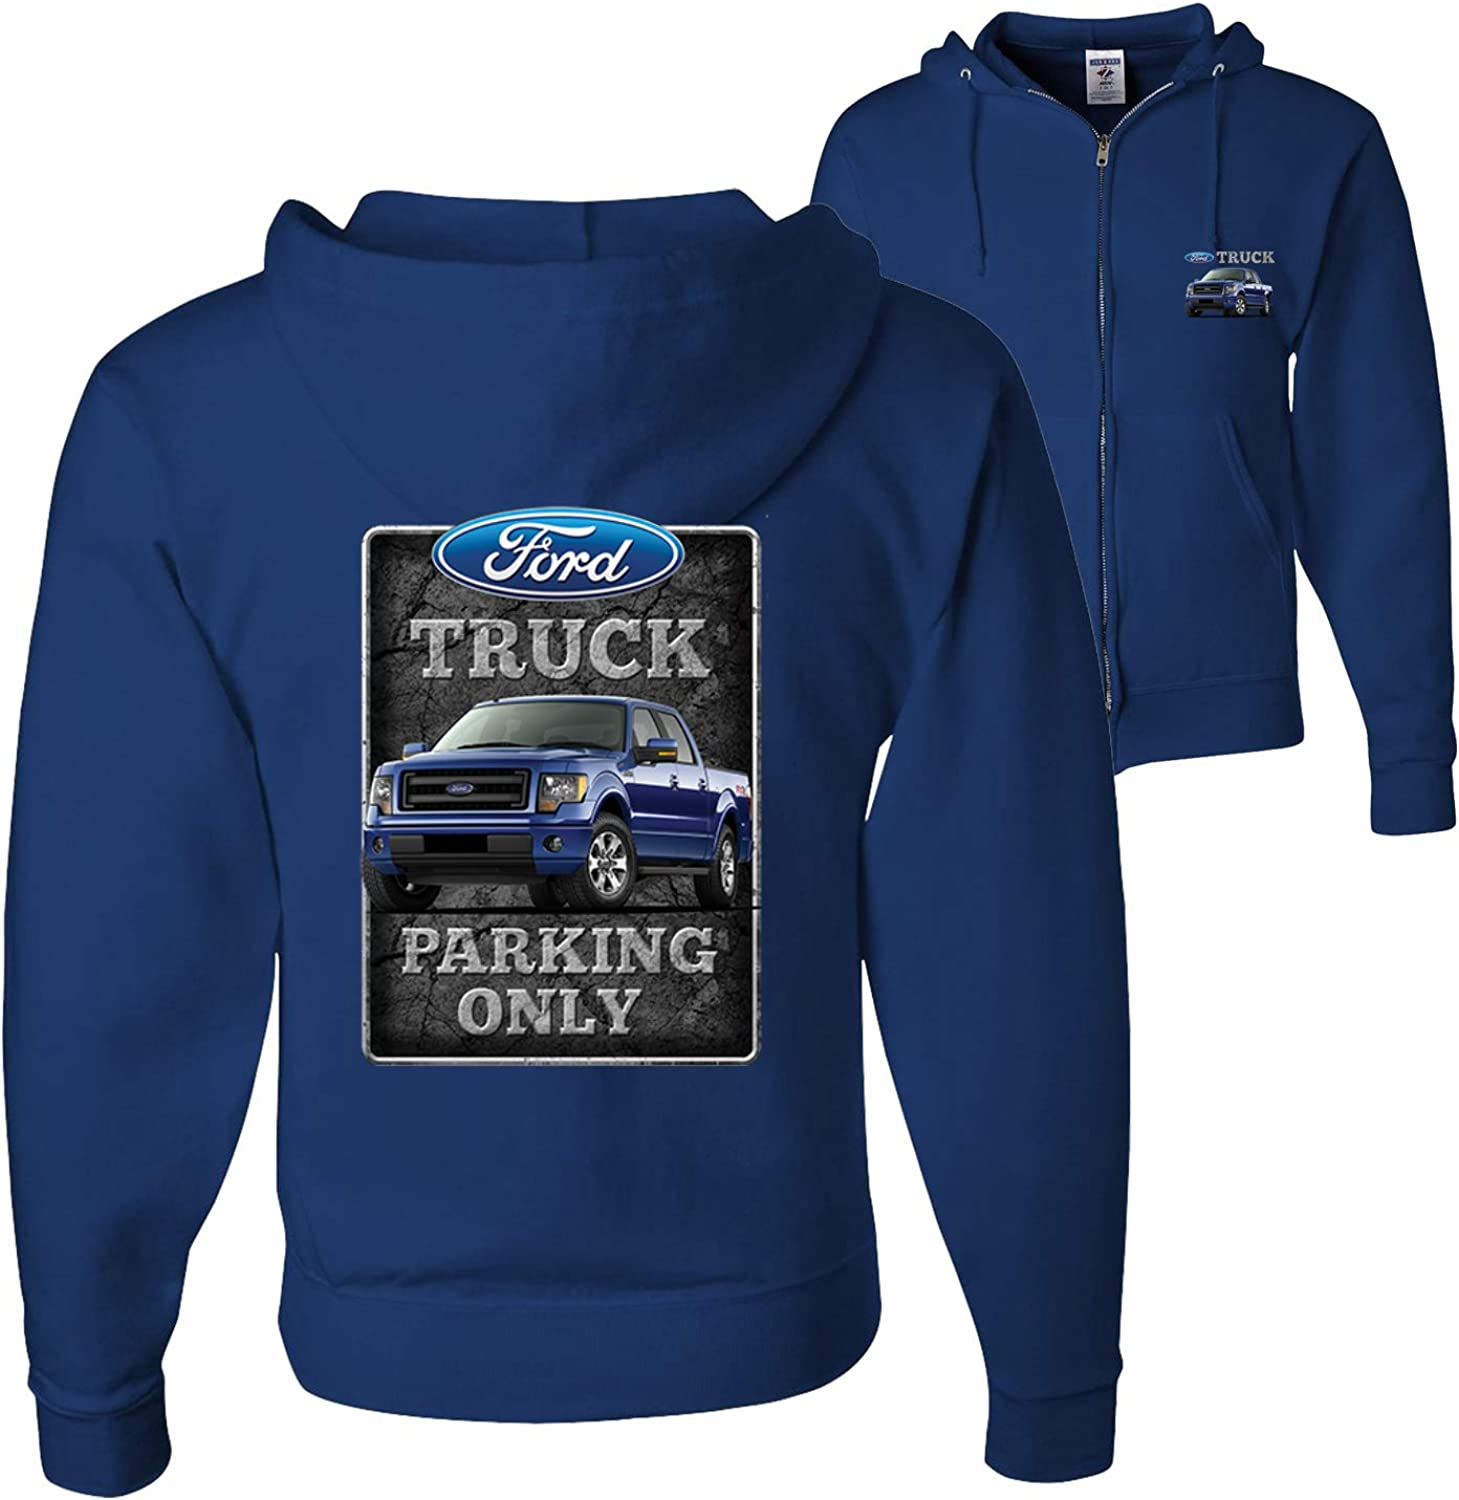 Ford Truck Portland Mall Parking Only Sign Gift Cars of Trucks Owners Wholesale for